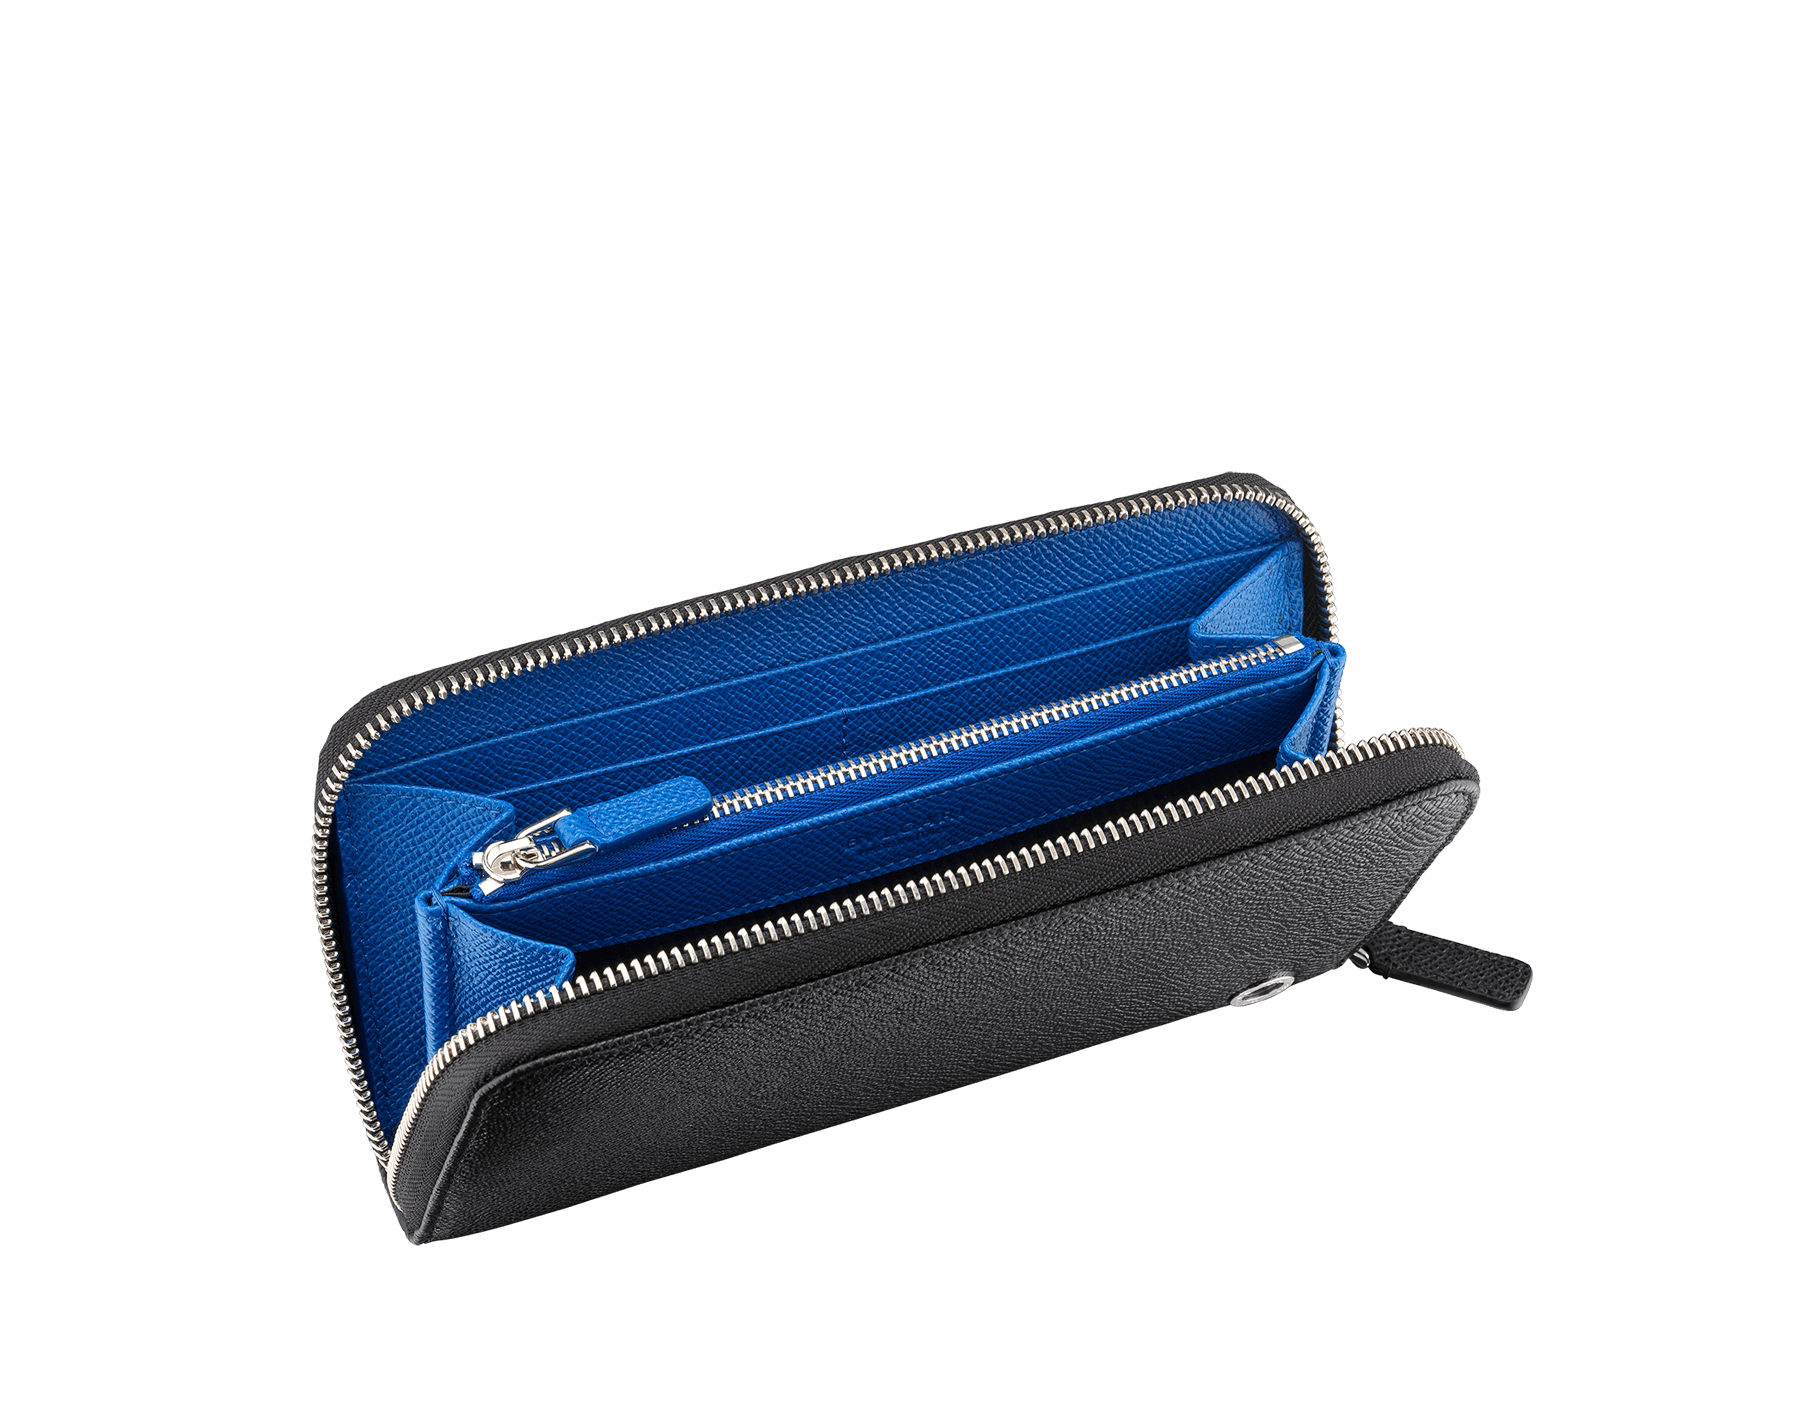 BVLGARI BVLGARI man zipped wallet in black and cobalt tourmaline grain calf leather and black nappa lining. Iconic logo décor in palladium plated brass. 288251 image 2